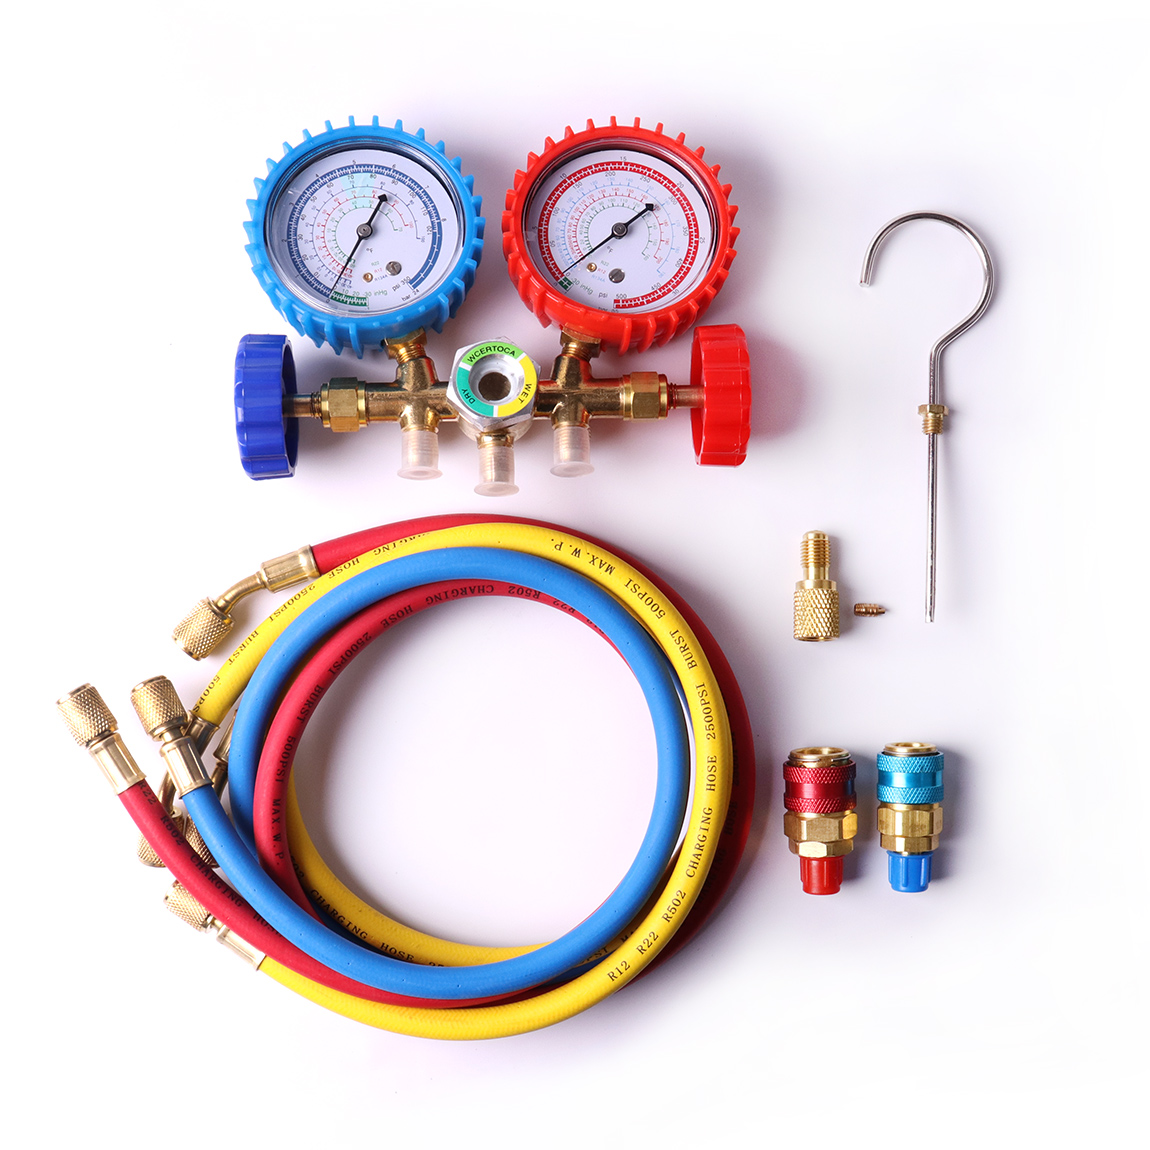 New Air Conditioning Red Blue H-L R134 Quick Couplers R12 R22 R502 and R134a A/C Manifold Brass Gauge Set with 3 Charging Hoses sexy swimwear push up bikini floral printed swimsuit high waist bikinis set maillot de bain bathing suit